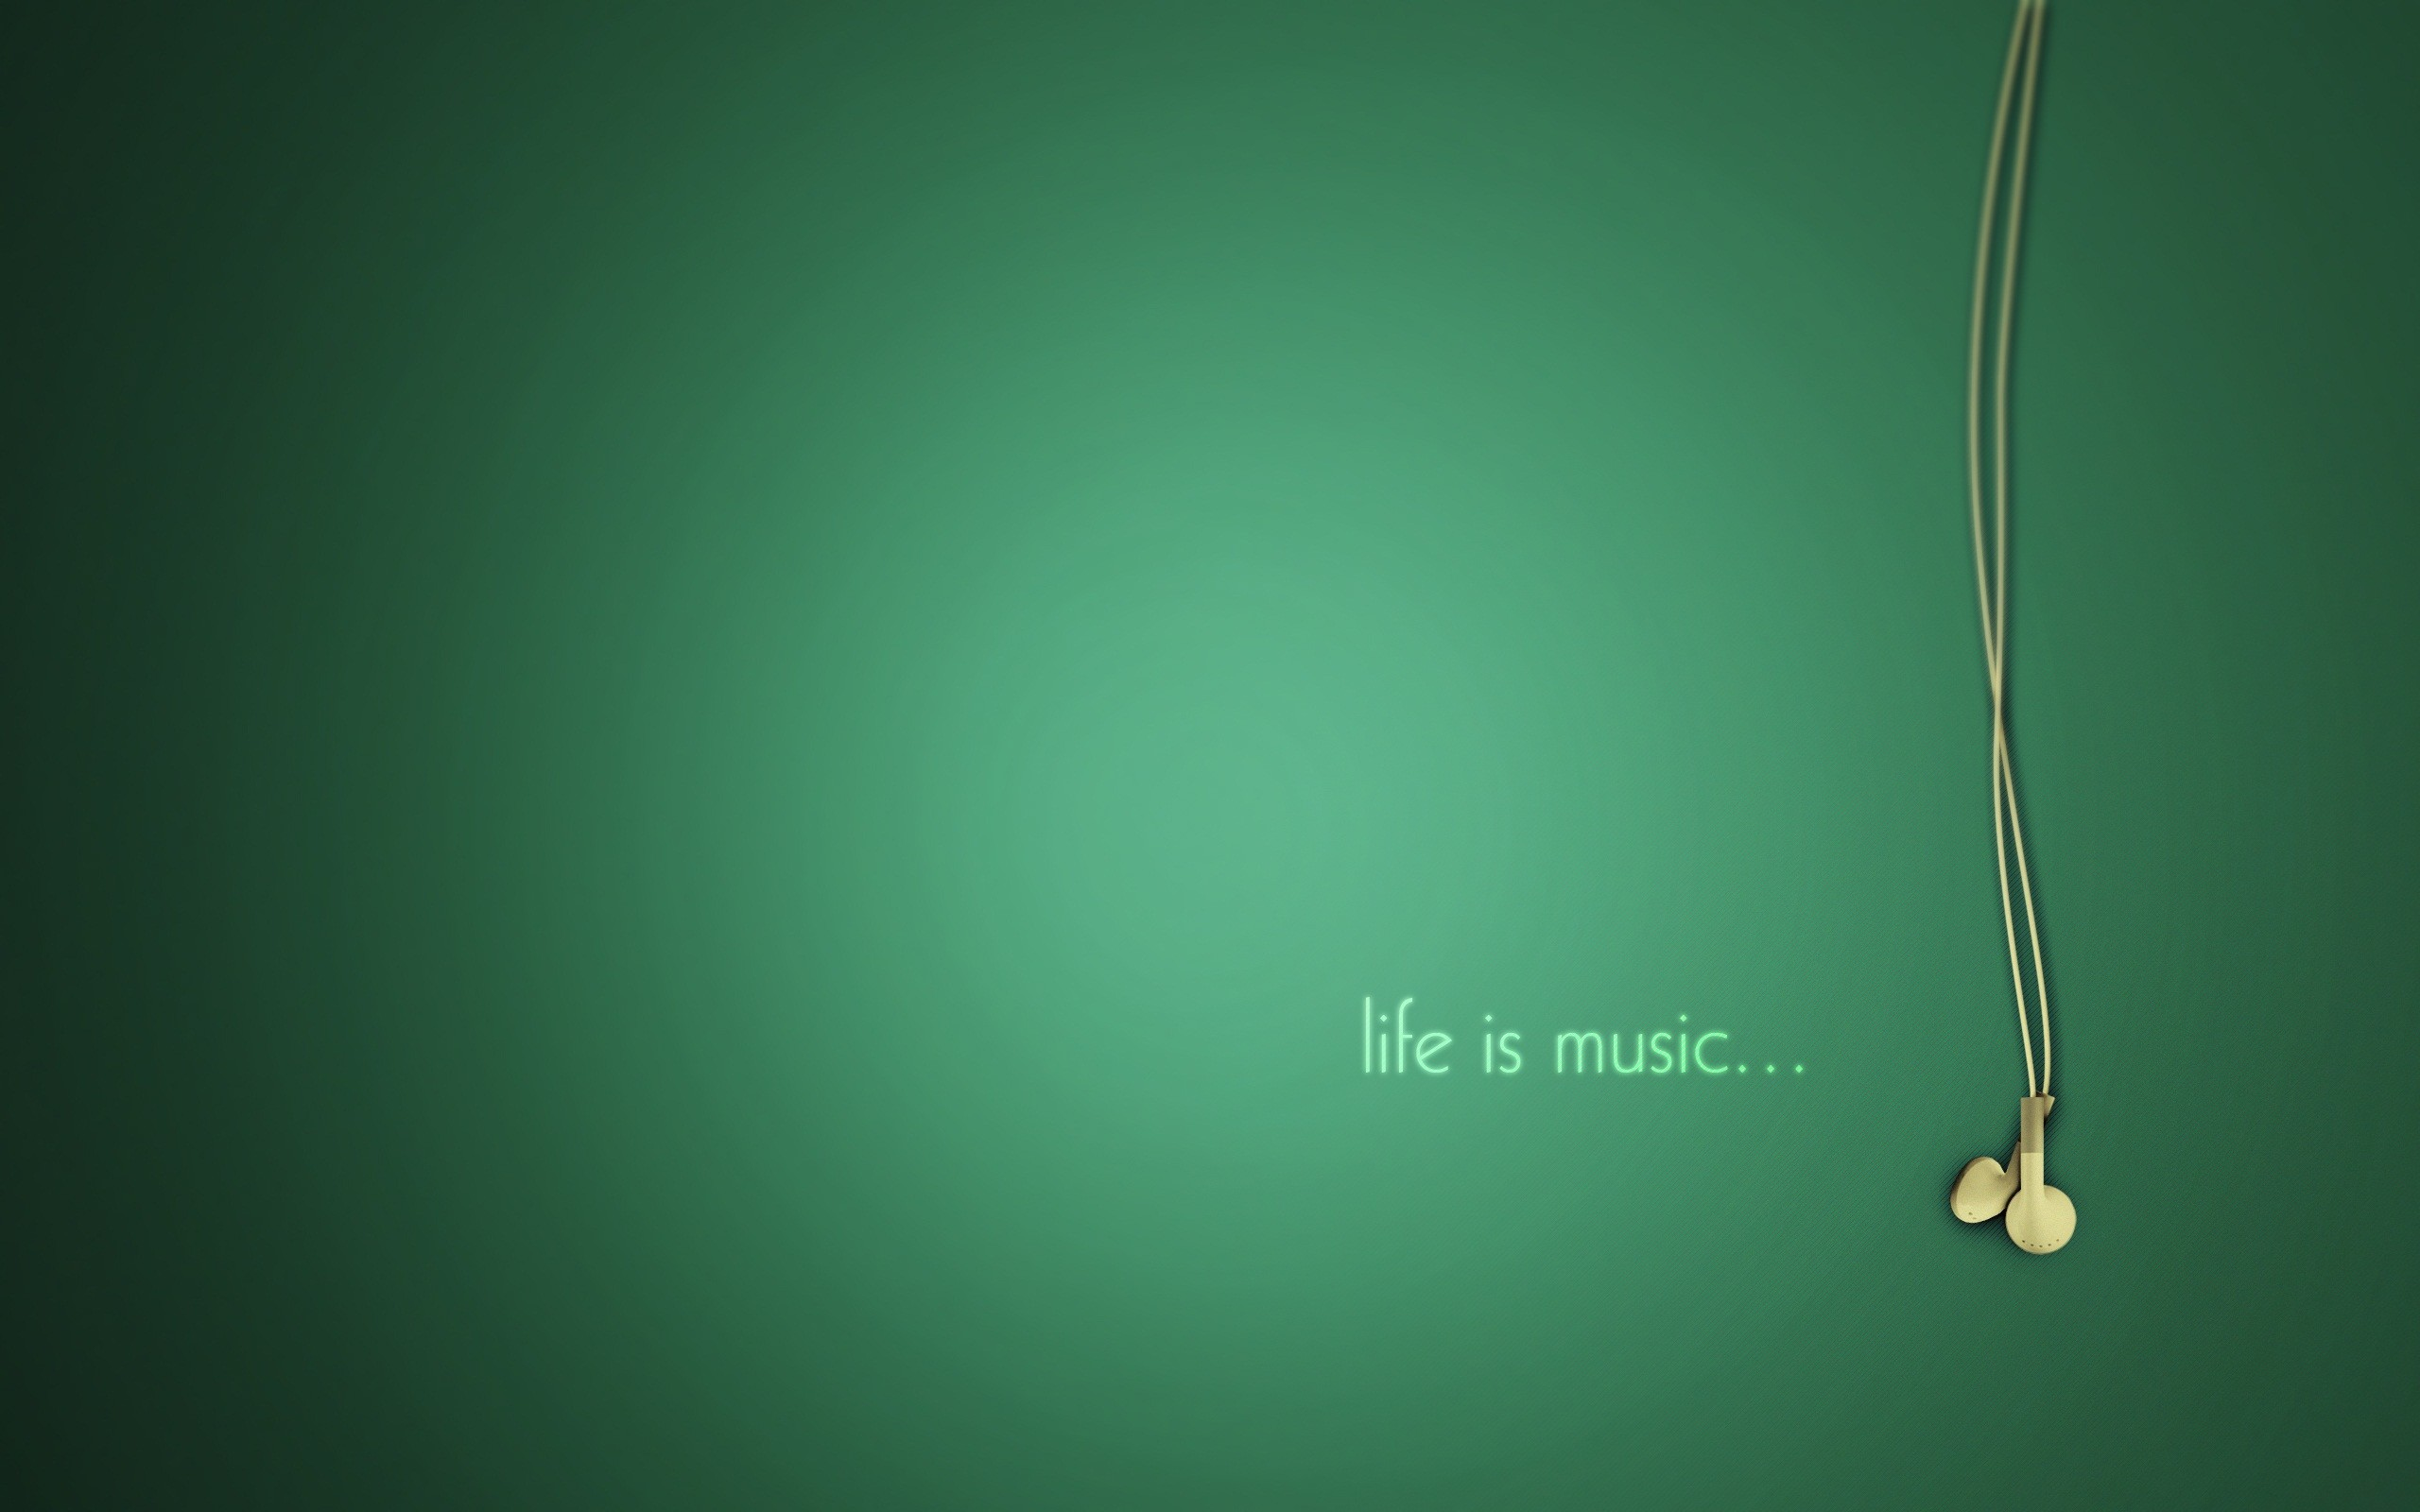 2560x1600 Desktop Wallpaper Music Themes - WallpaperSafari Musical Desktop Wallpaper  ...